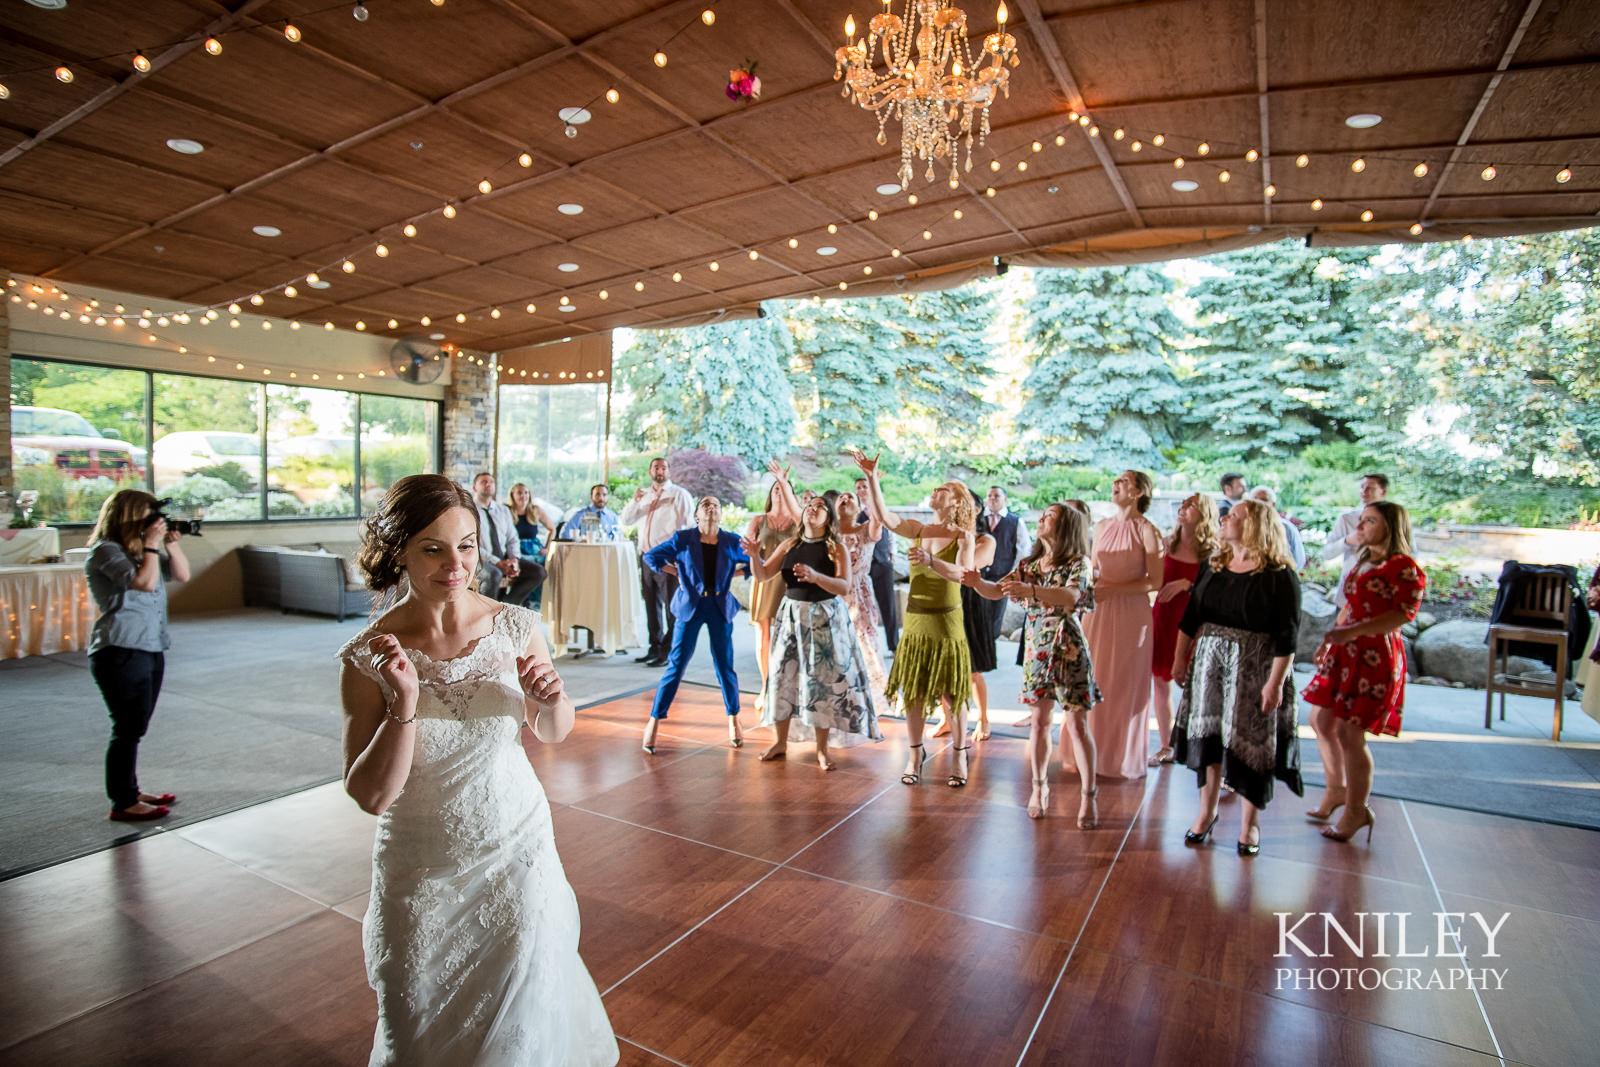 127 - Ravenwood Golf Club wedding pictures - Rochester NY - Kniley Photography - XT2B2057.jpg